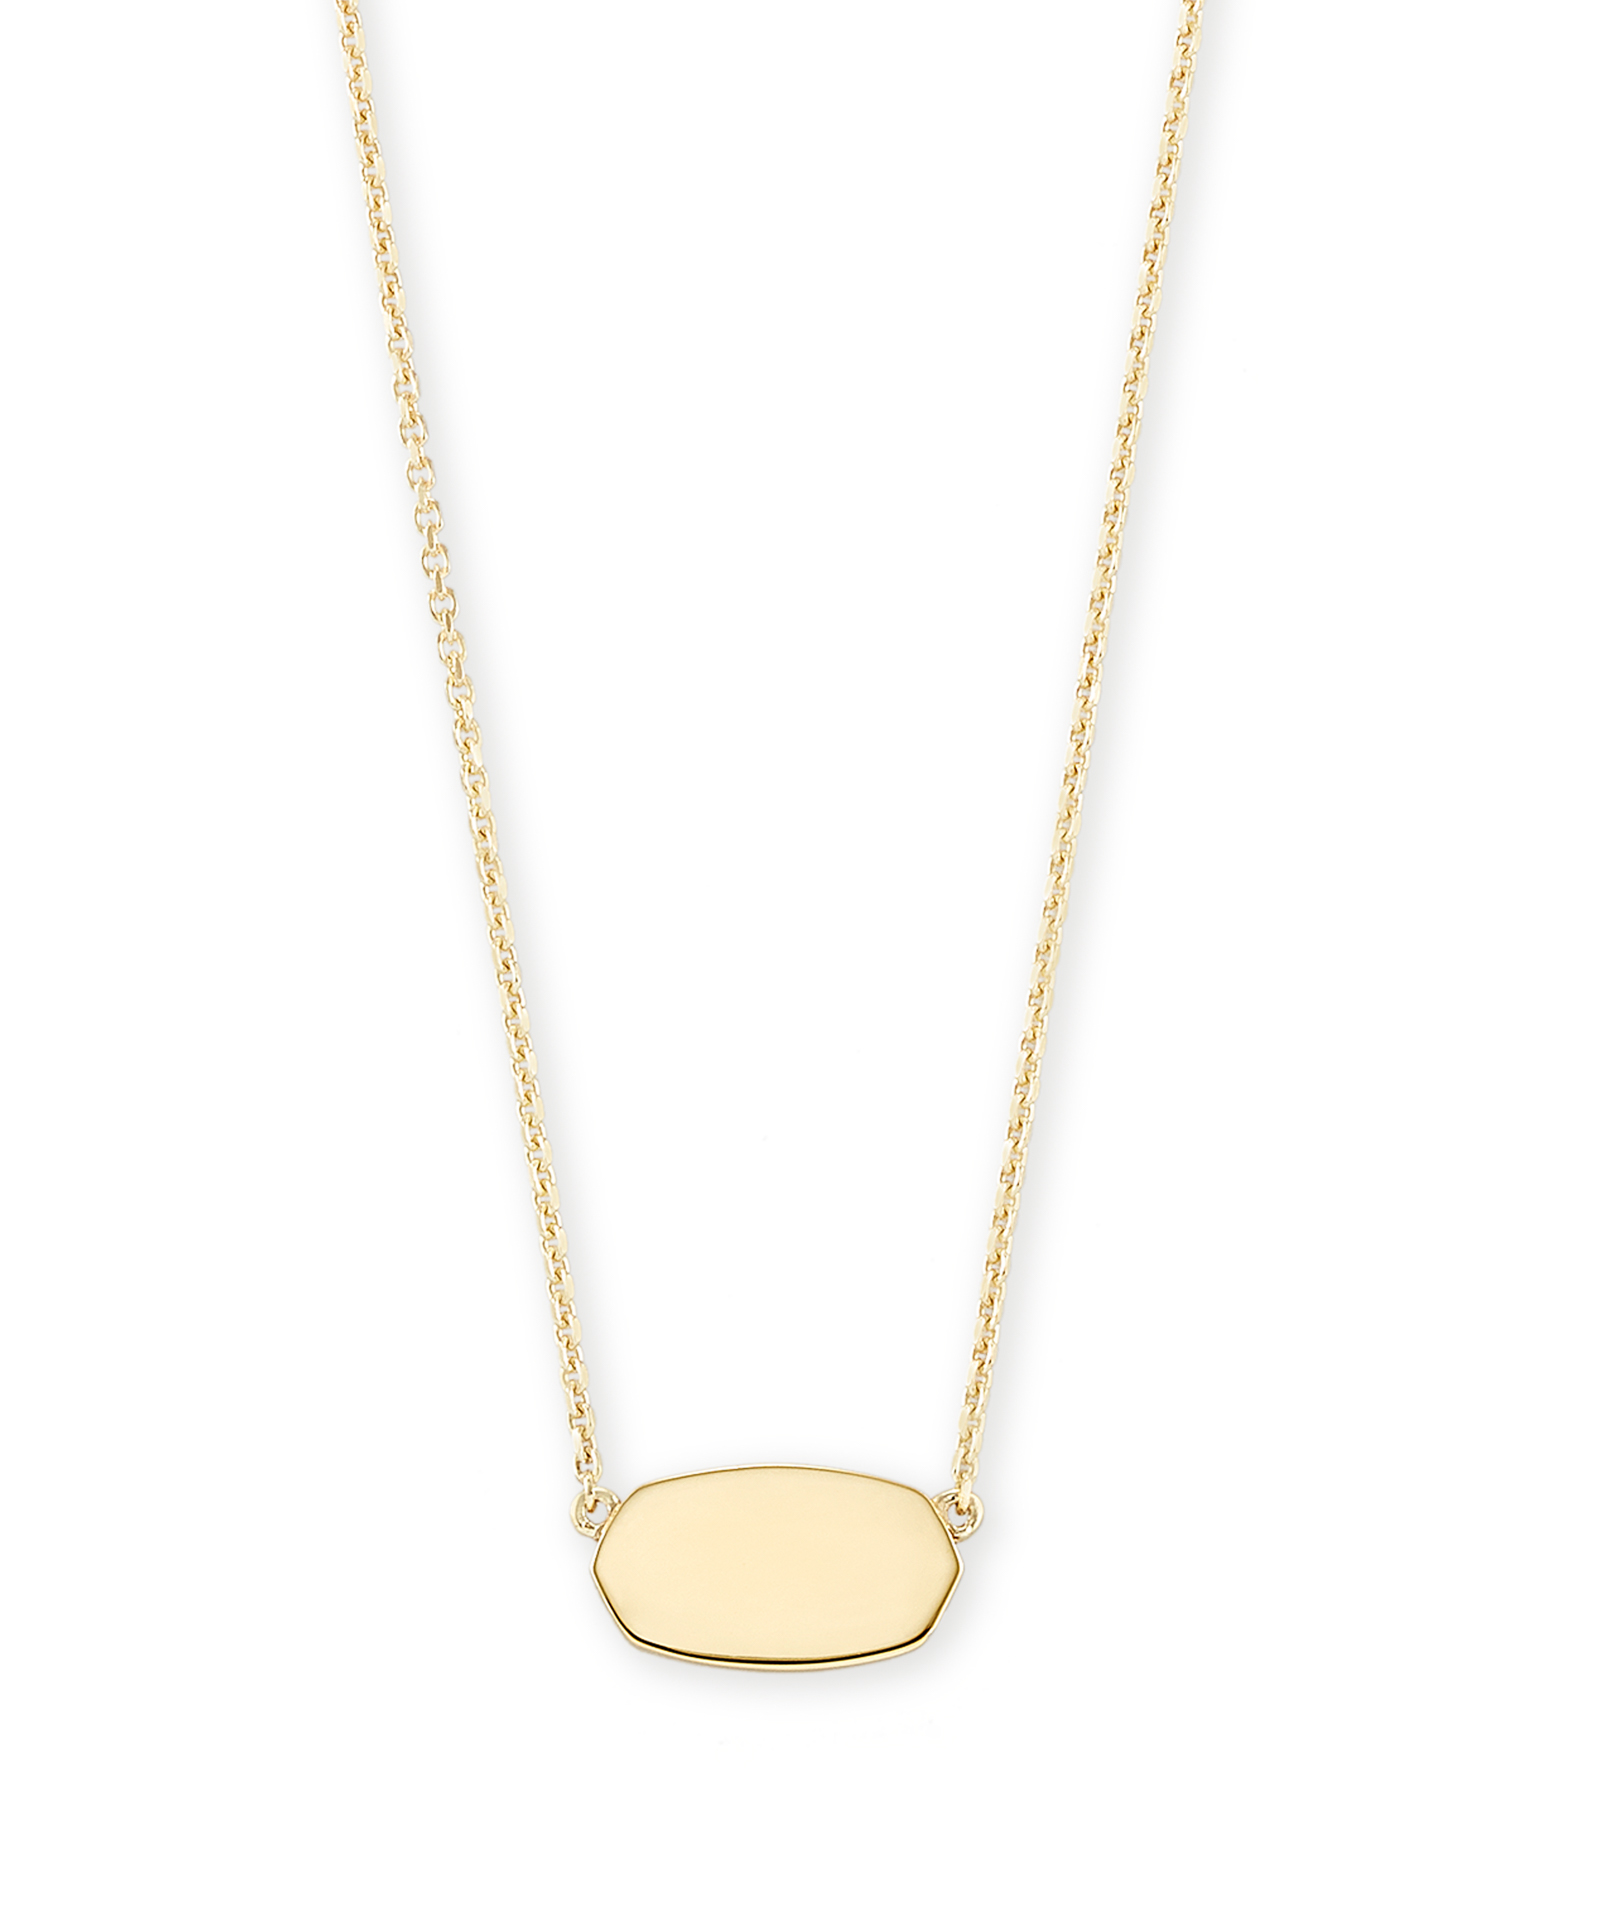 Elisa Pendant Necklace in 18k Gold Vermeil